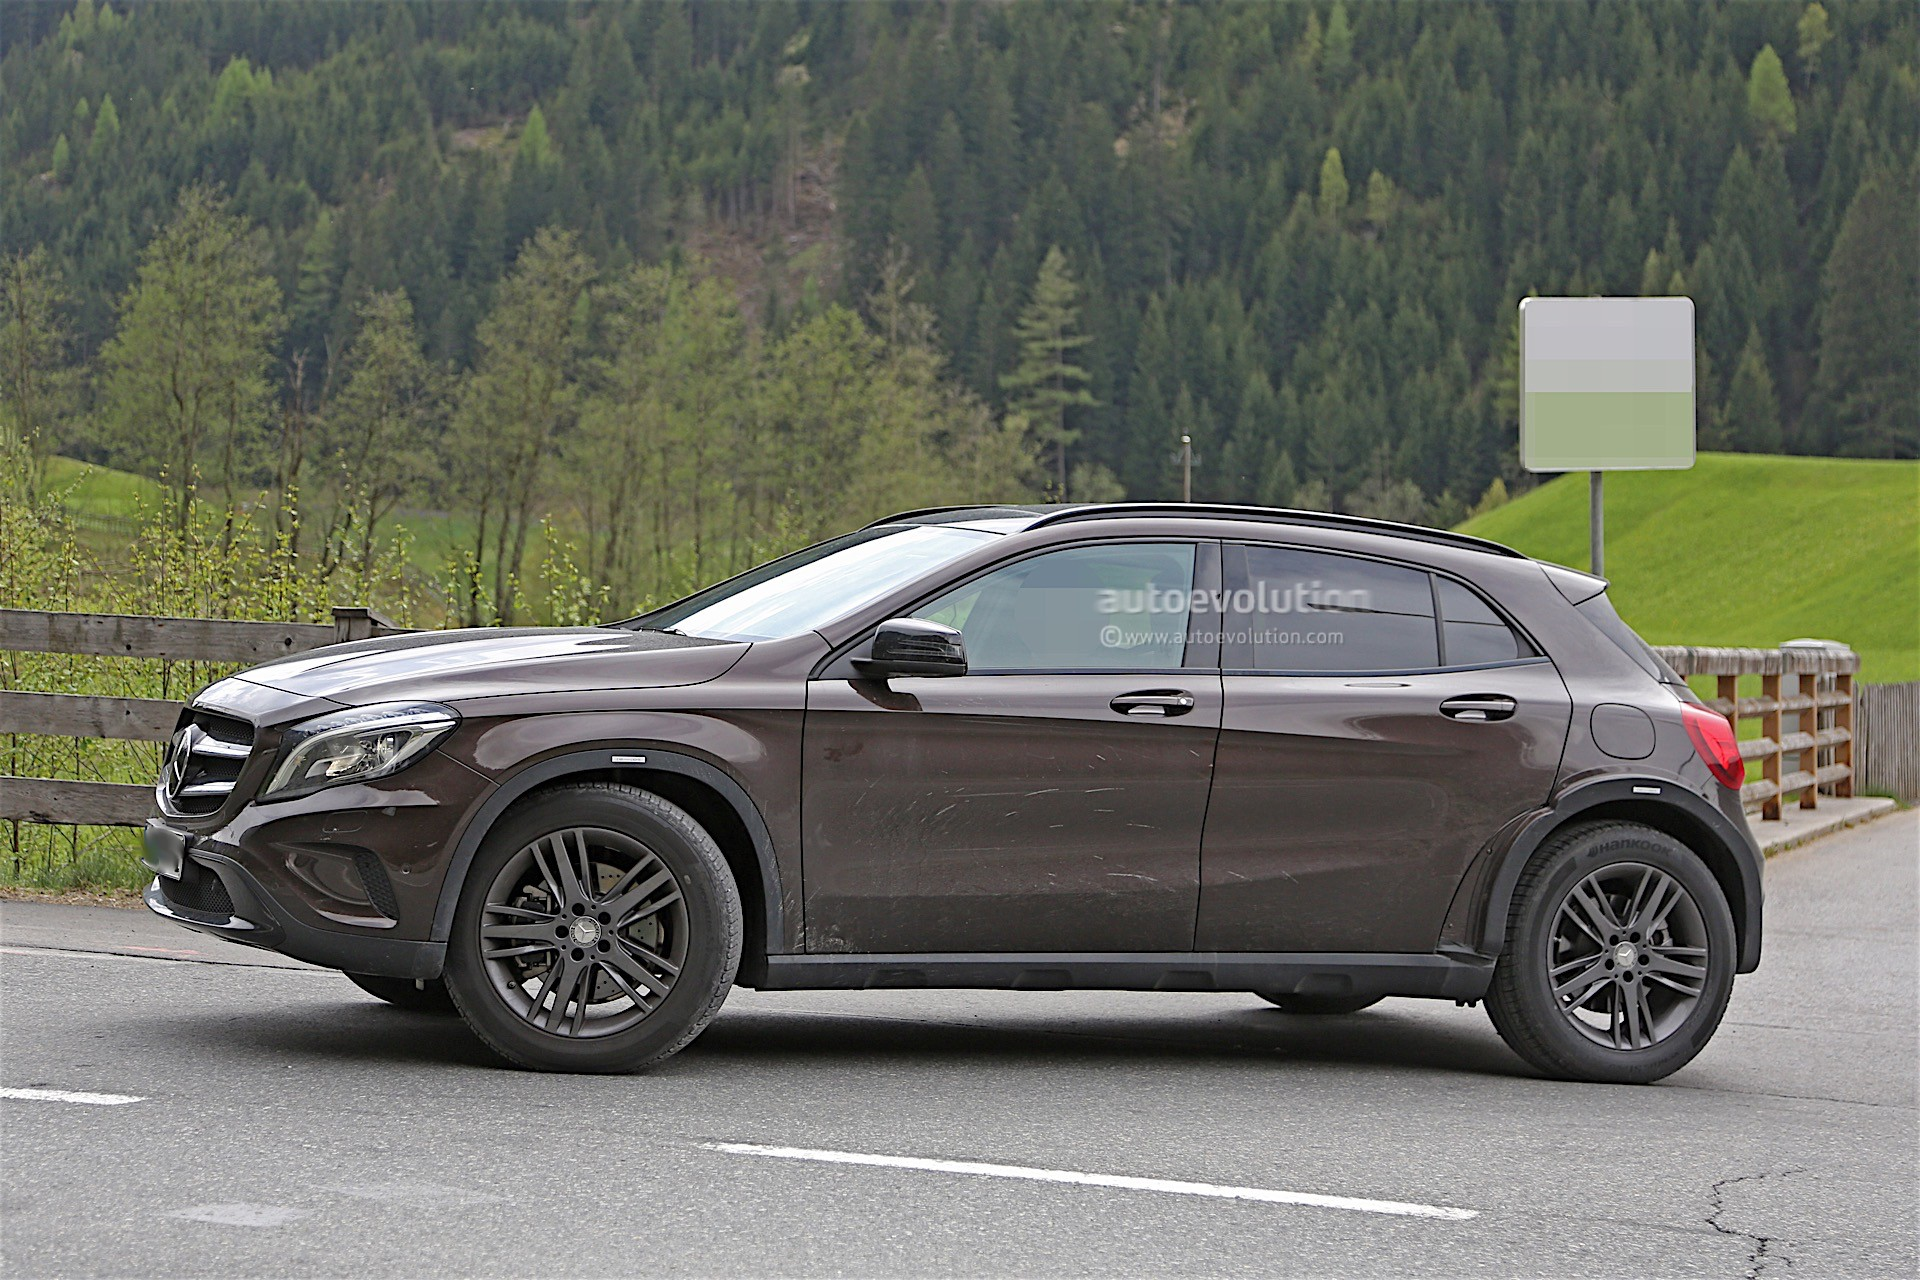 Mercedes benz is testing upcoming glb spyshots reveal for Upcoming mercedes benz models